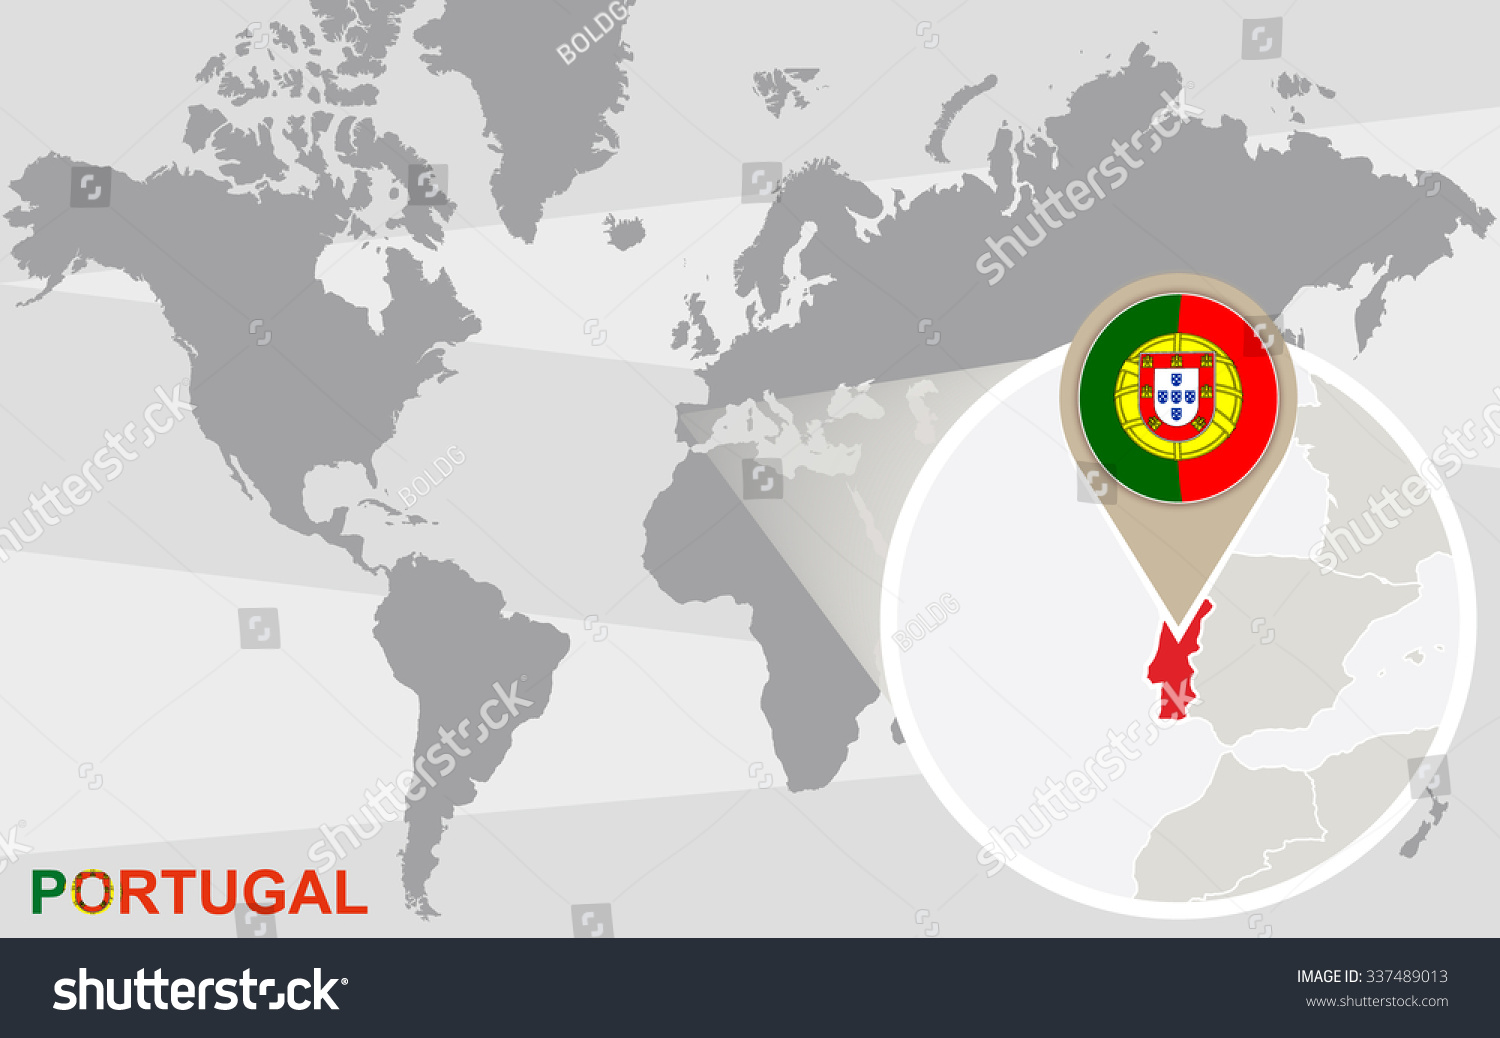 World map magnified portugal portugal flag stock illustration world map with magnified portugal portugal flag and map rasterized copy gumiabroncs Gallery